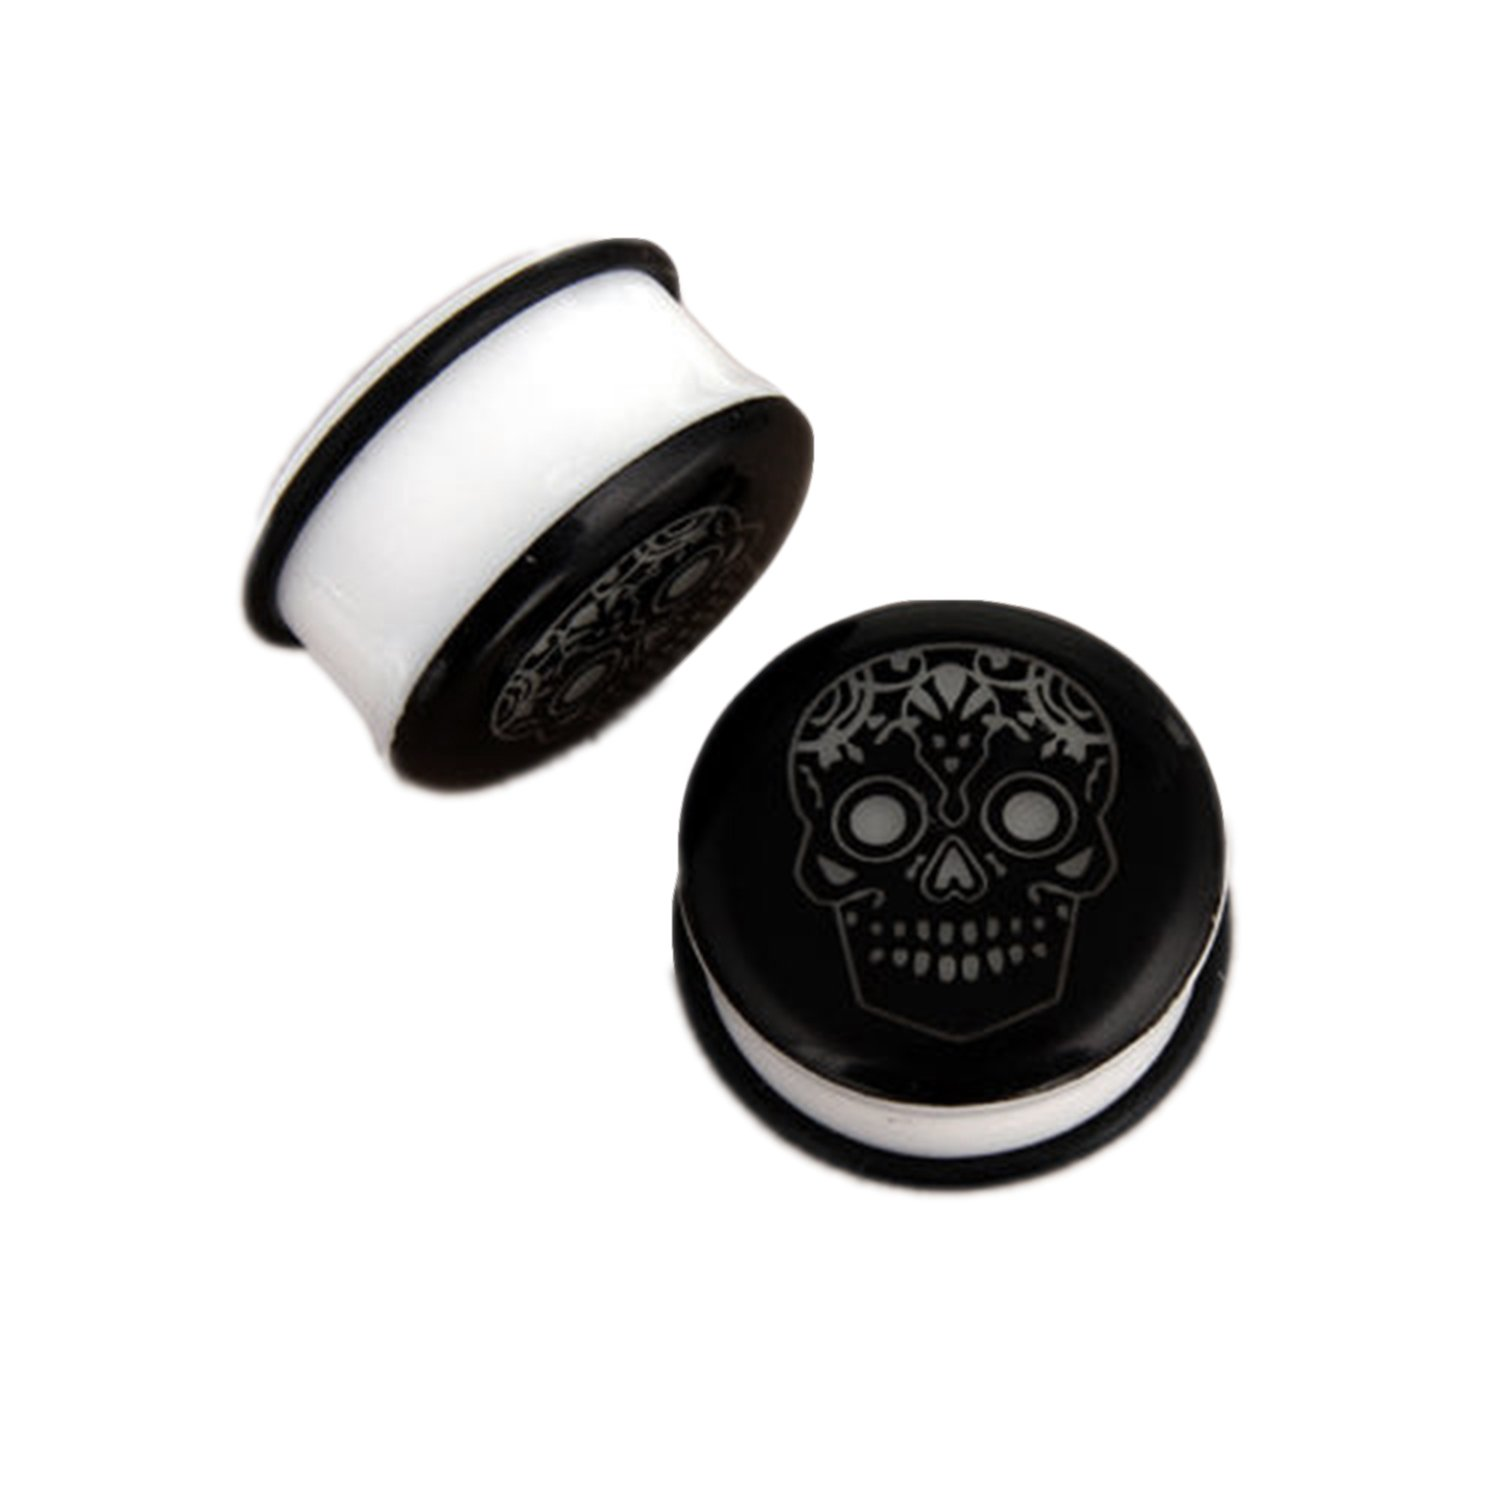 JewelryVolt Glow in the dark Sugar Skull Acrylic single flare Solid ear plug gauges with O ring Black and White